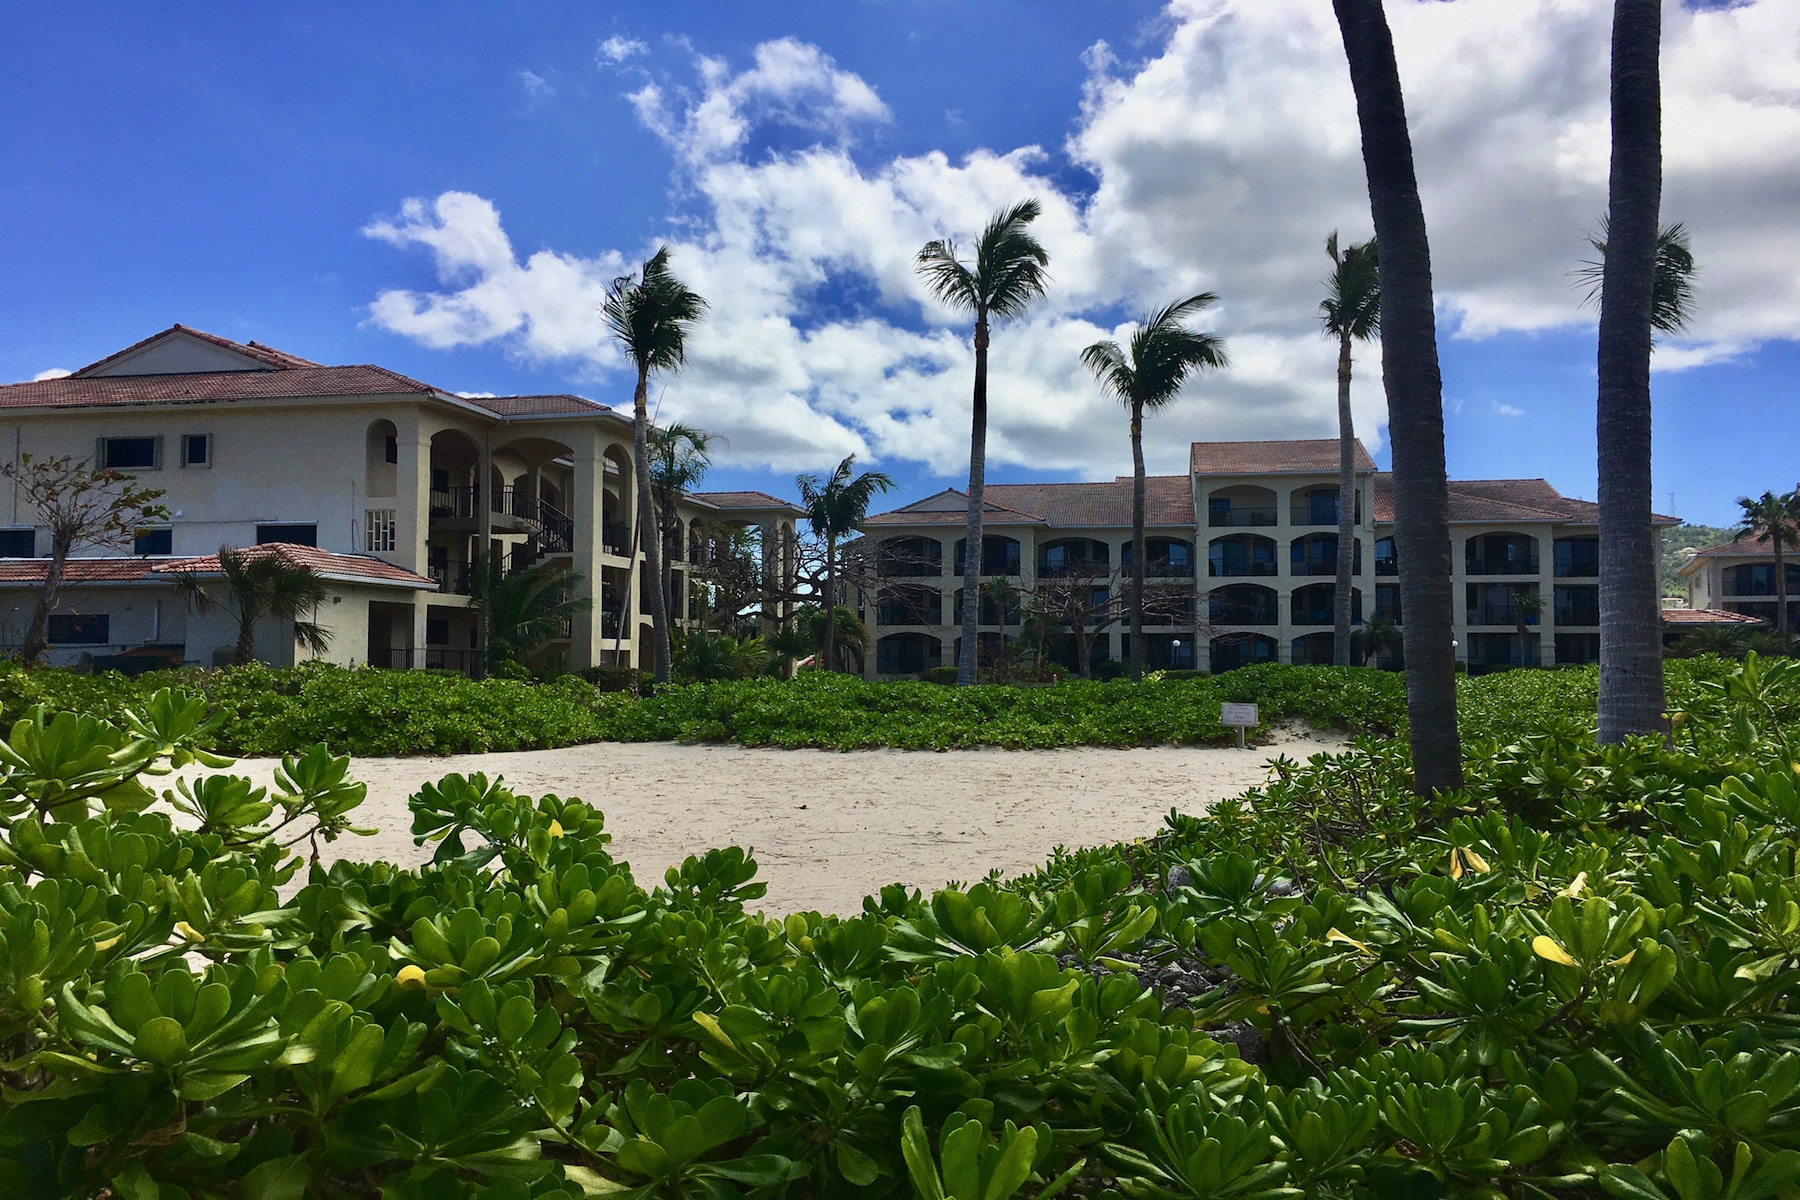 Condominium for Sale at 101E Pelican Cove 101E Pelican Cove St Croix, Virgin Islands 00820 United States Virgin Islands